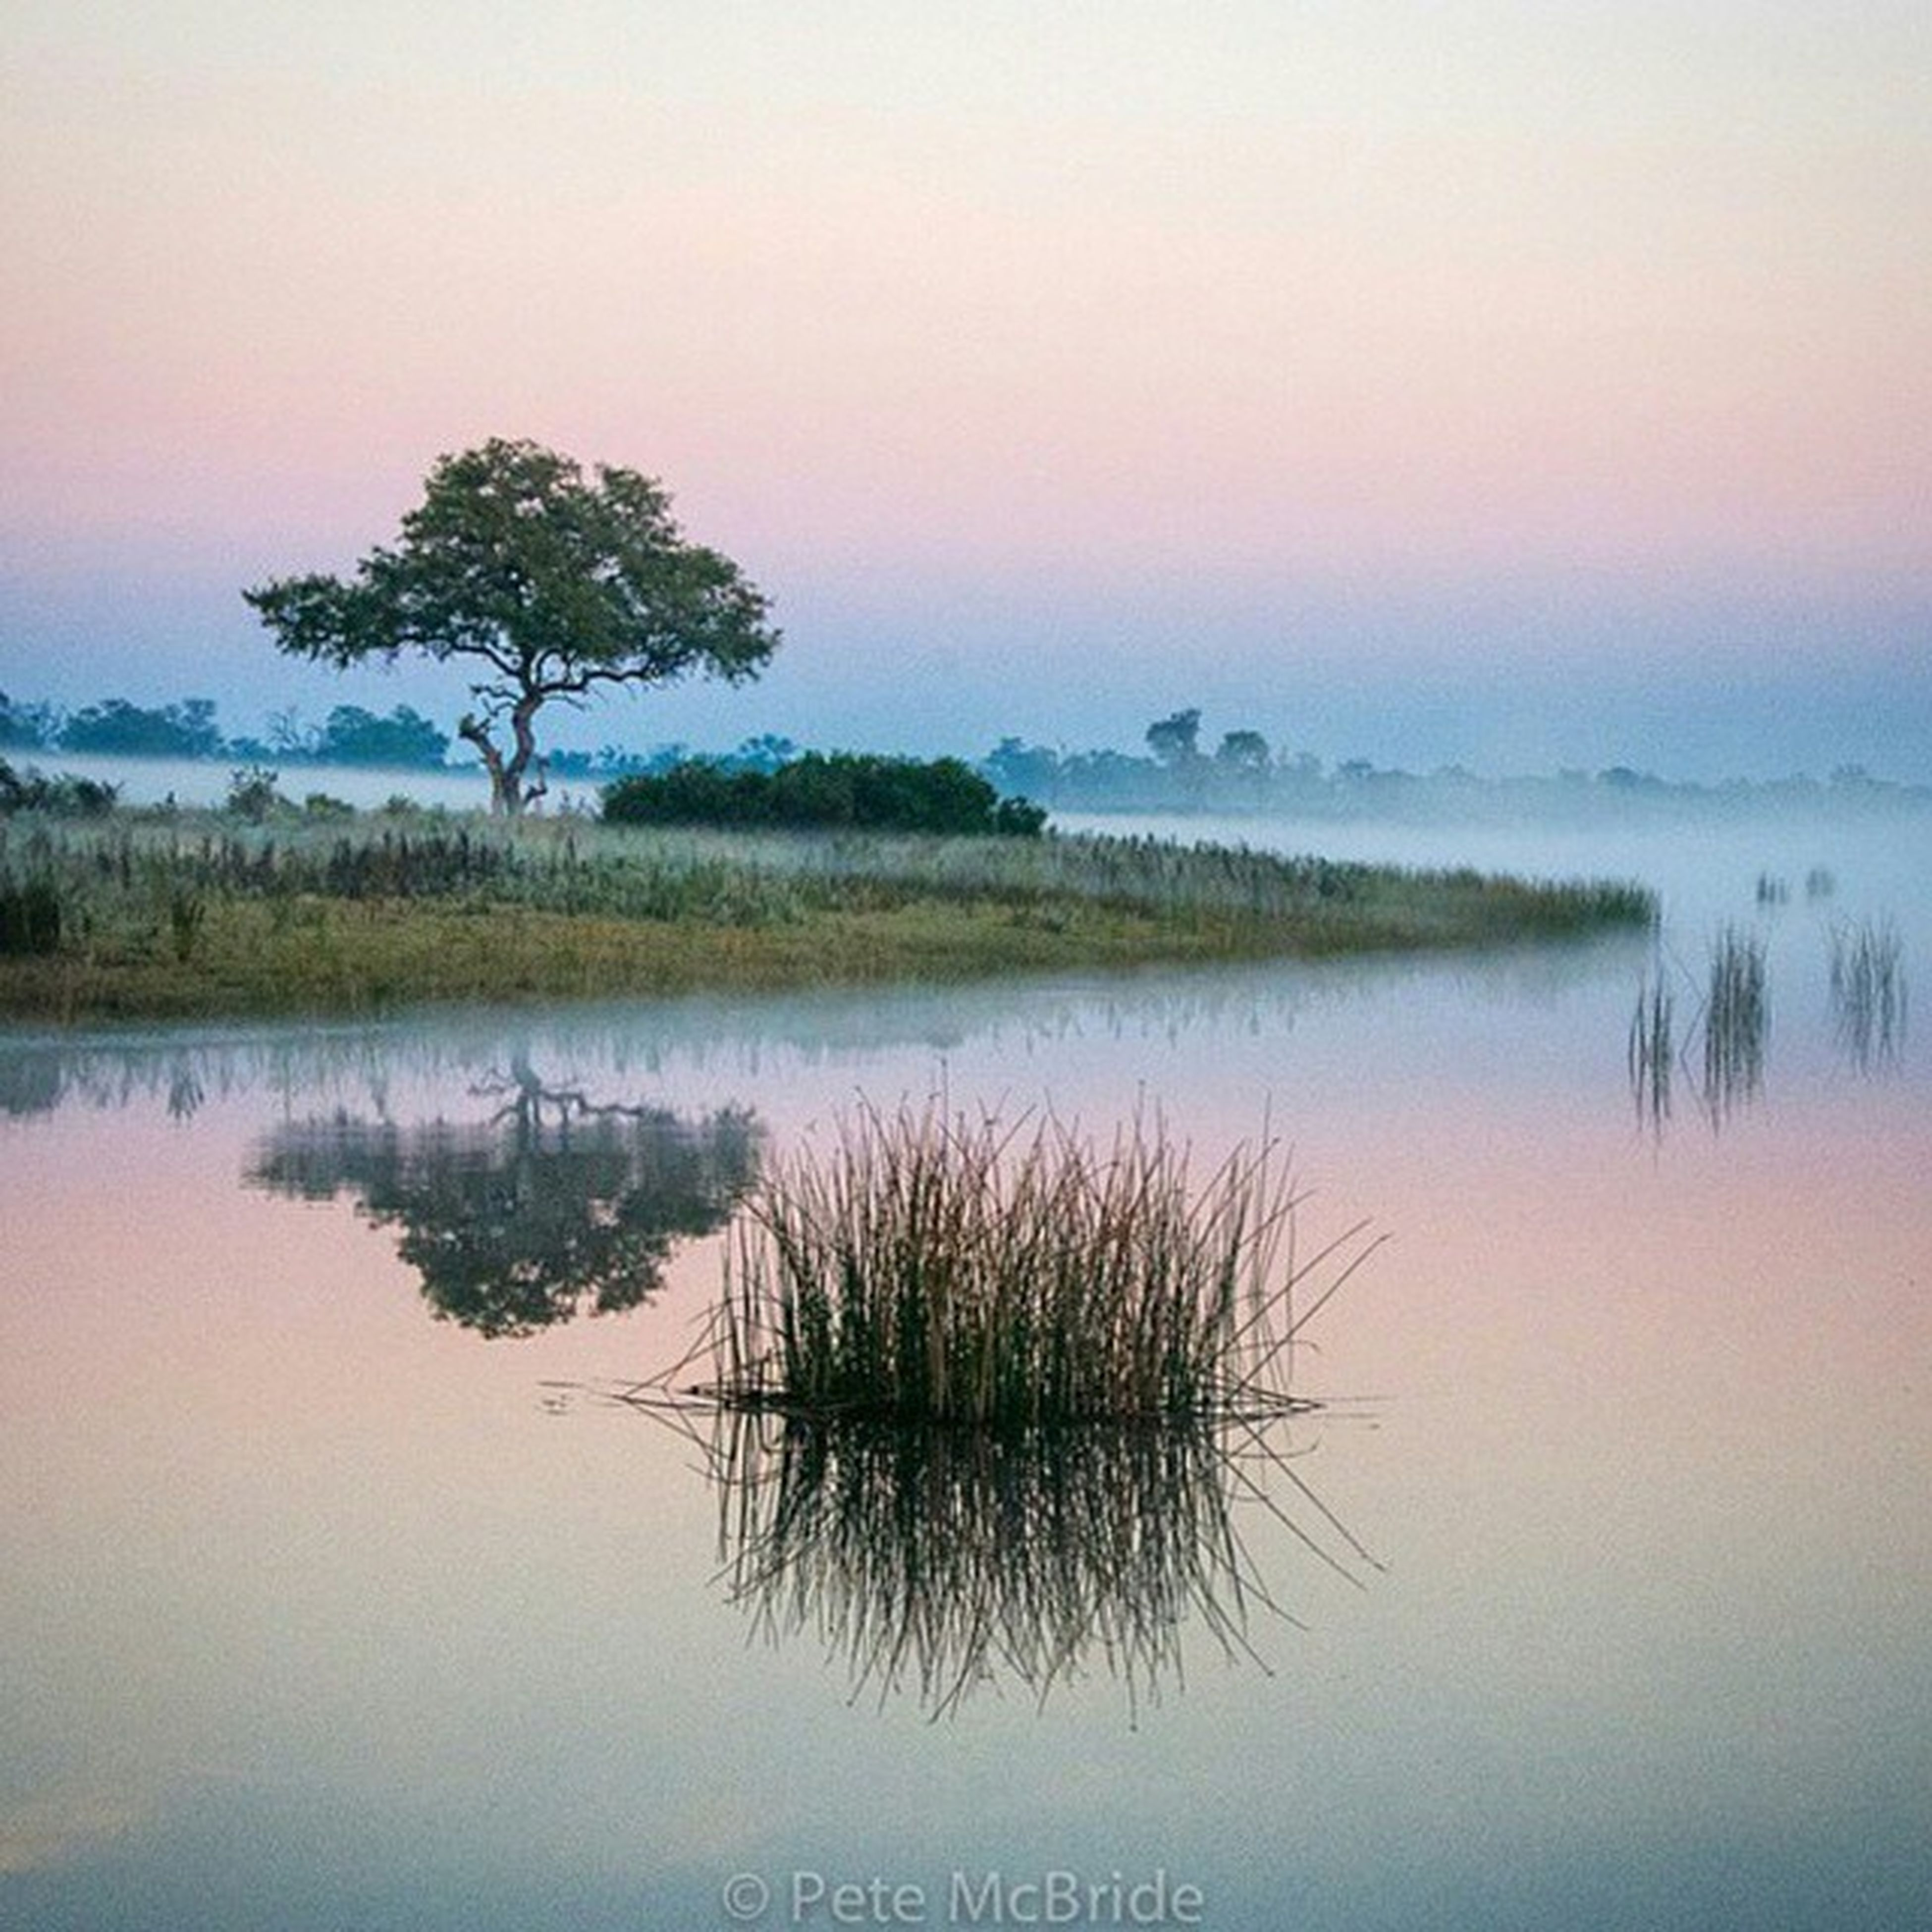 tranquil scene, water, tranquility, sunset, scenics, lake, reflection, beauty in nature, nature, sky, idyllic, tree, clear sky, waterfront, plant, silhouette, growth, calm, standing water, non-urban scene